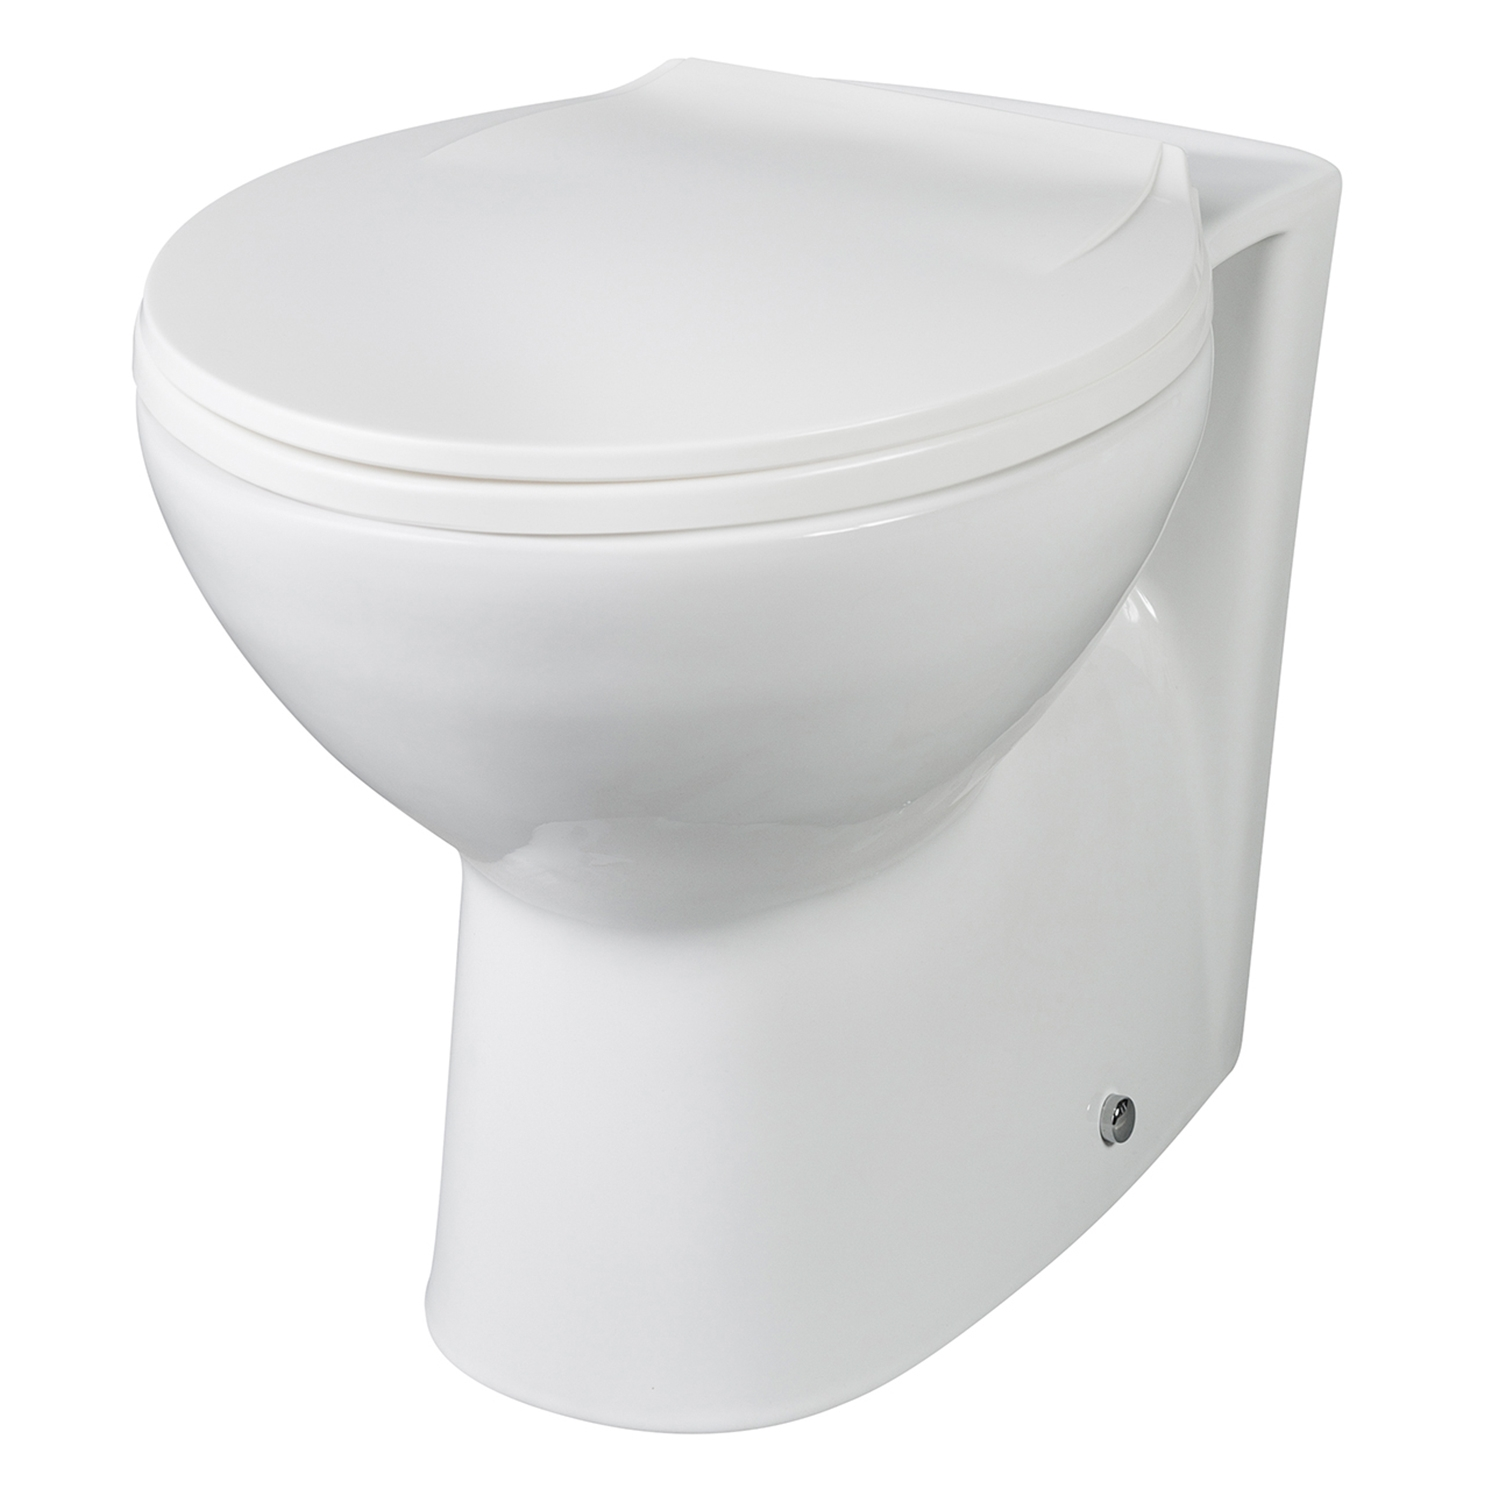 Premier Round Thermoplastic Toilet Seat, Soft Close Hinges, White